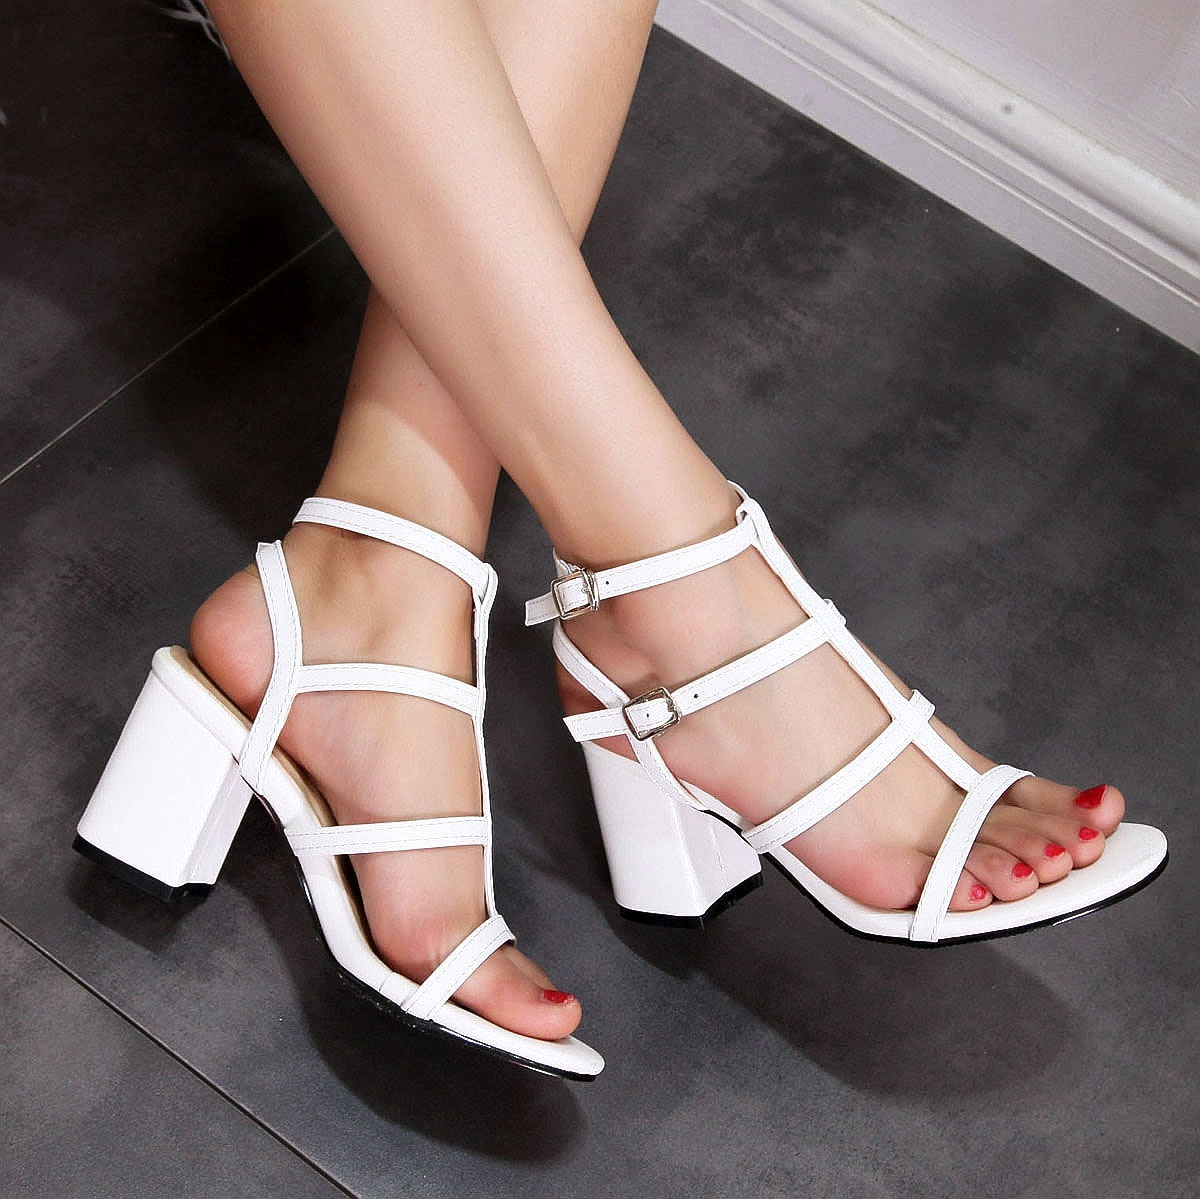 Pin on Shoes & Sandals